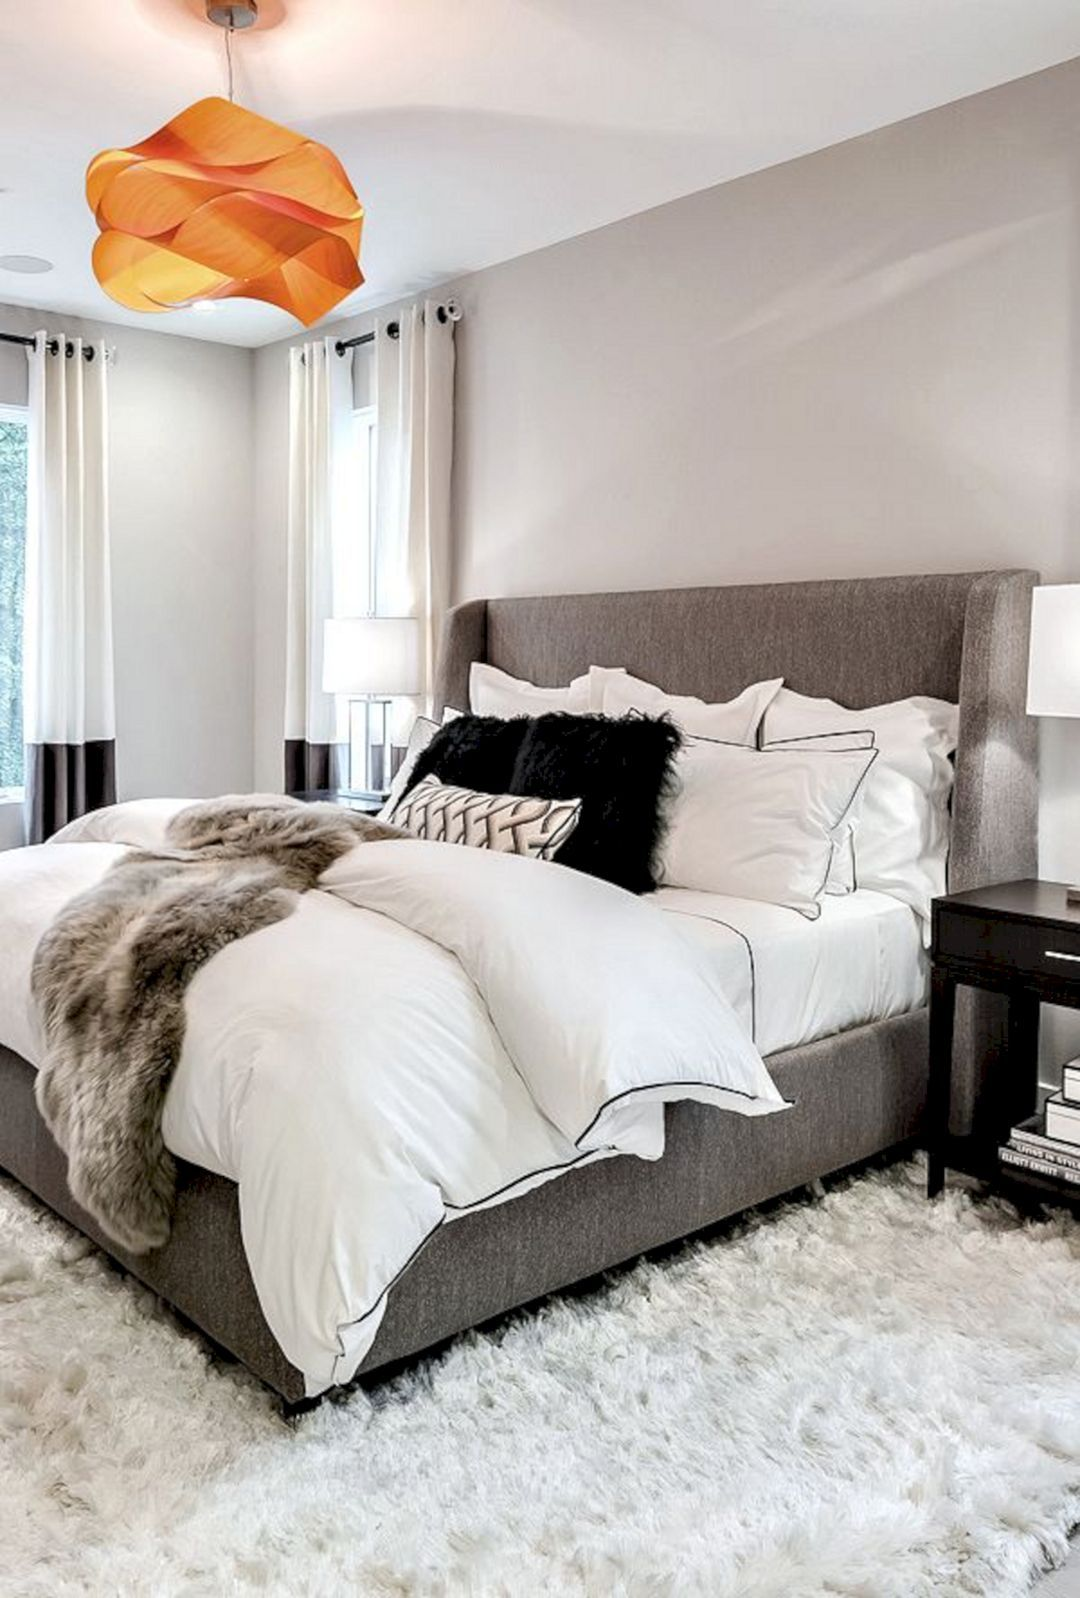 20 Cozy Small Bedroom Design And Decorating